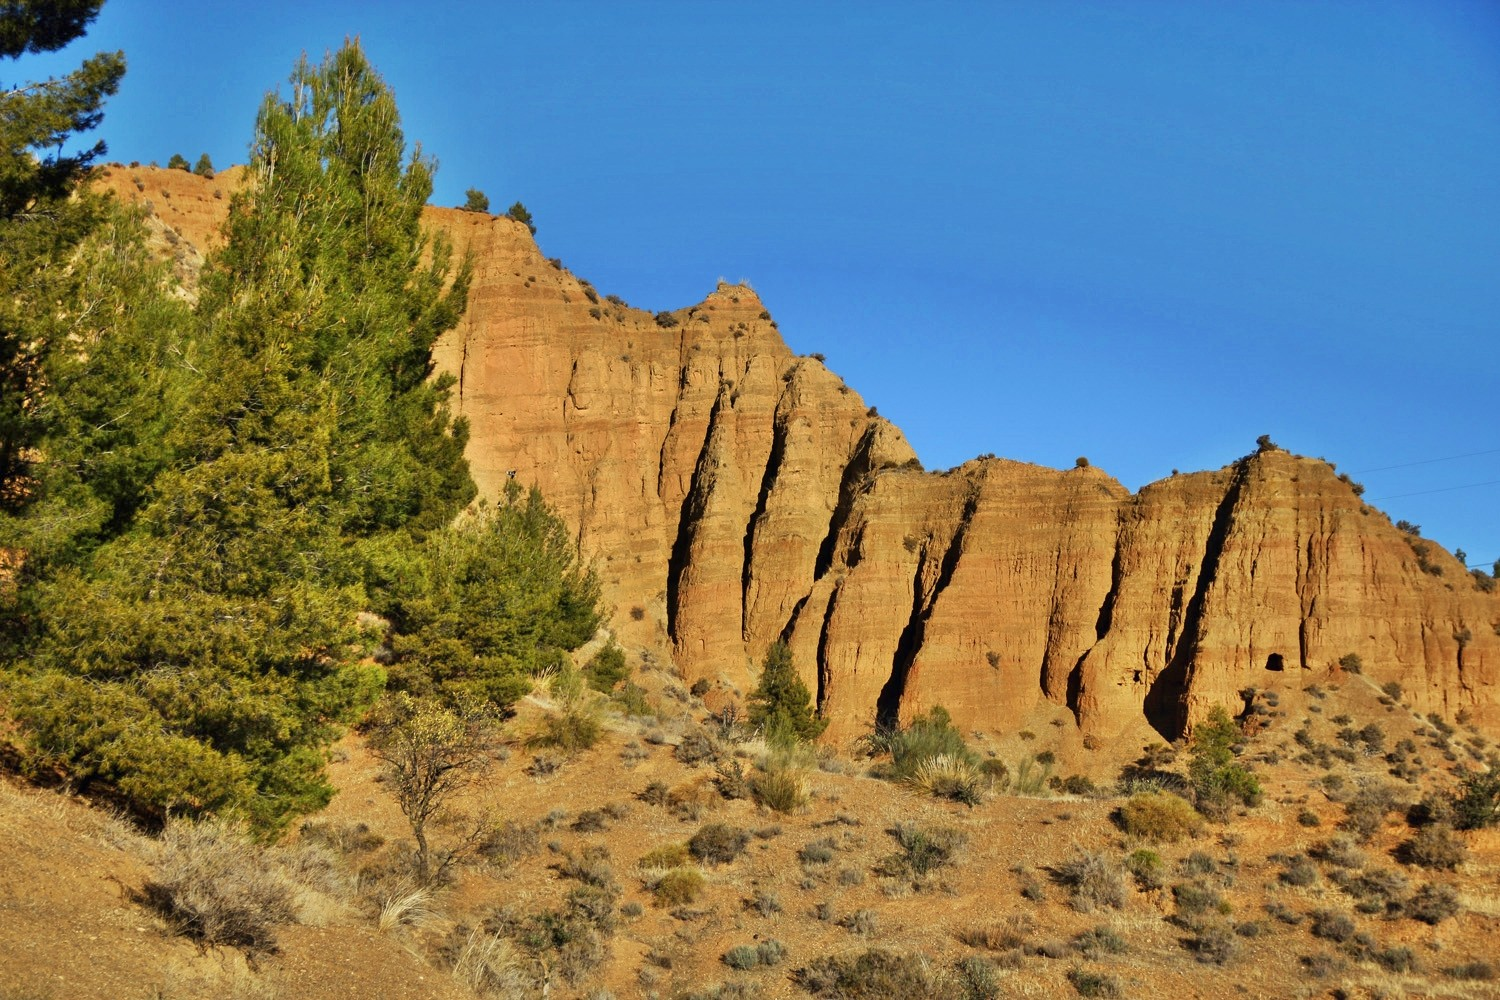 The Rock Formations of Marchal